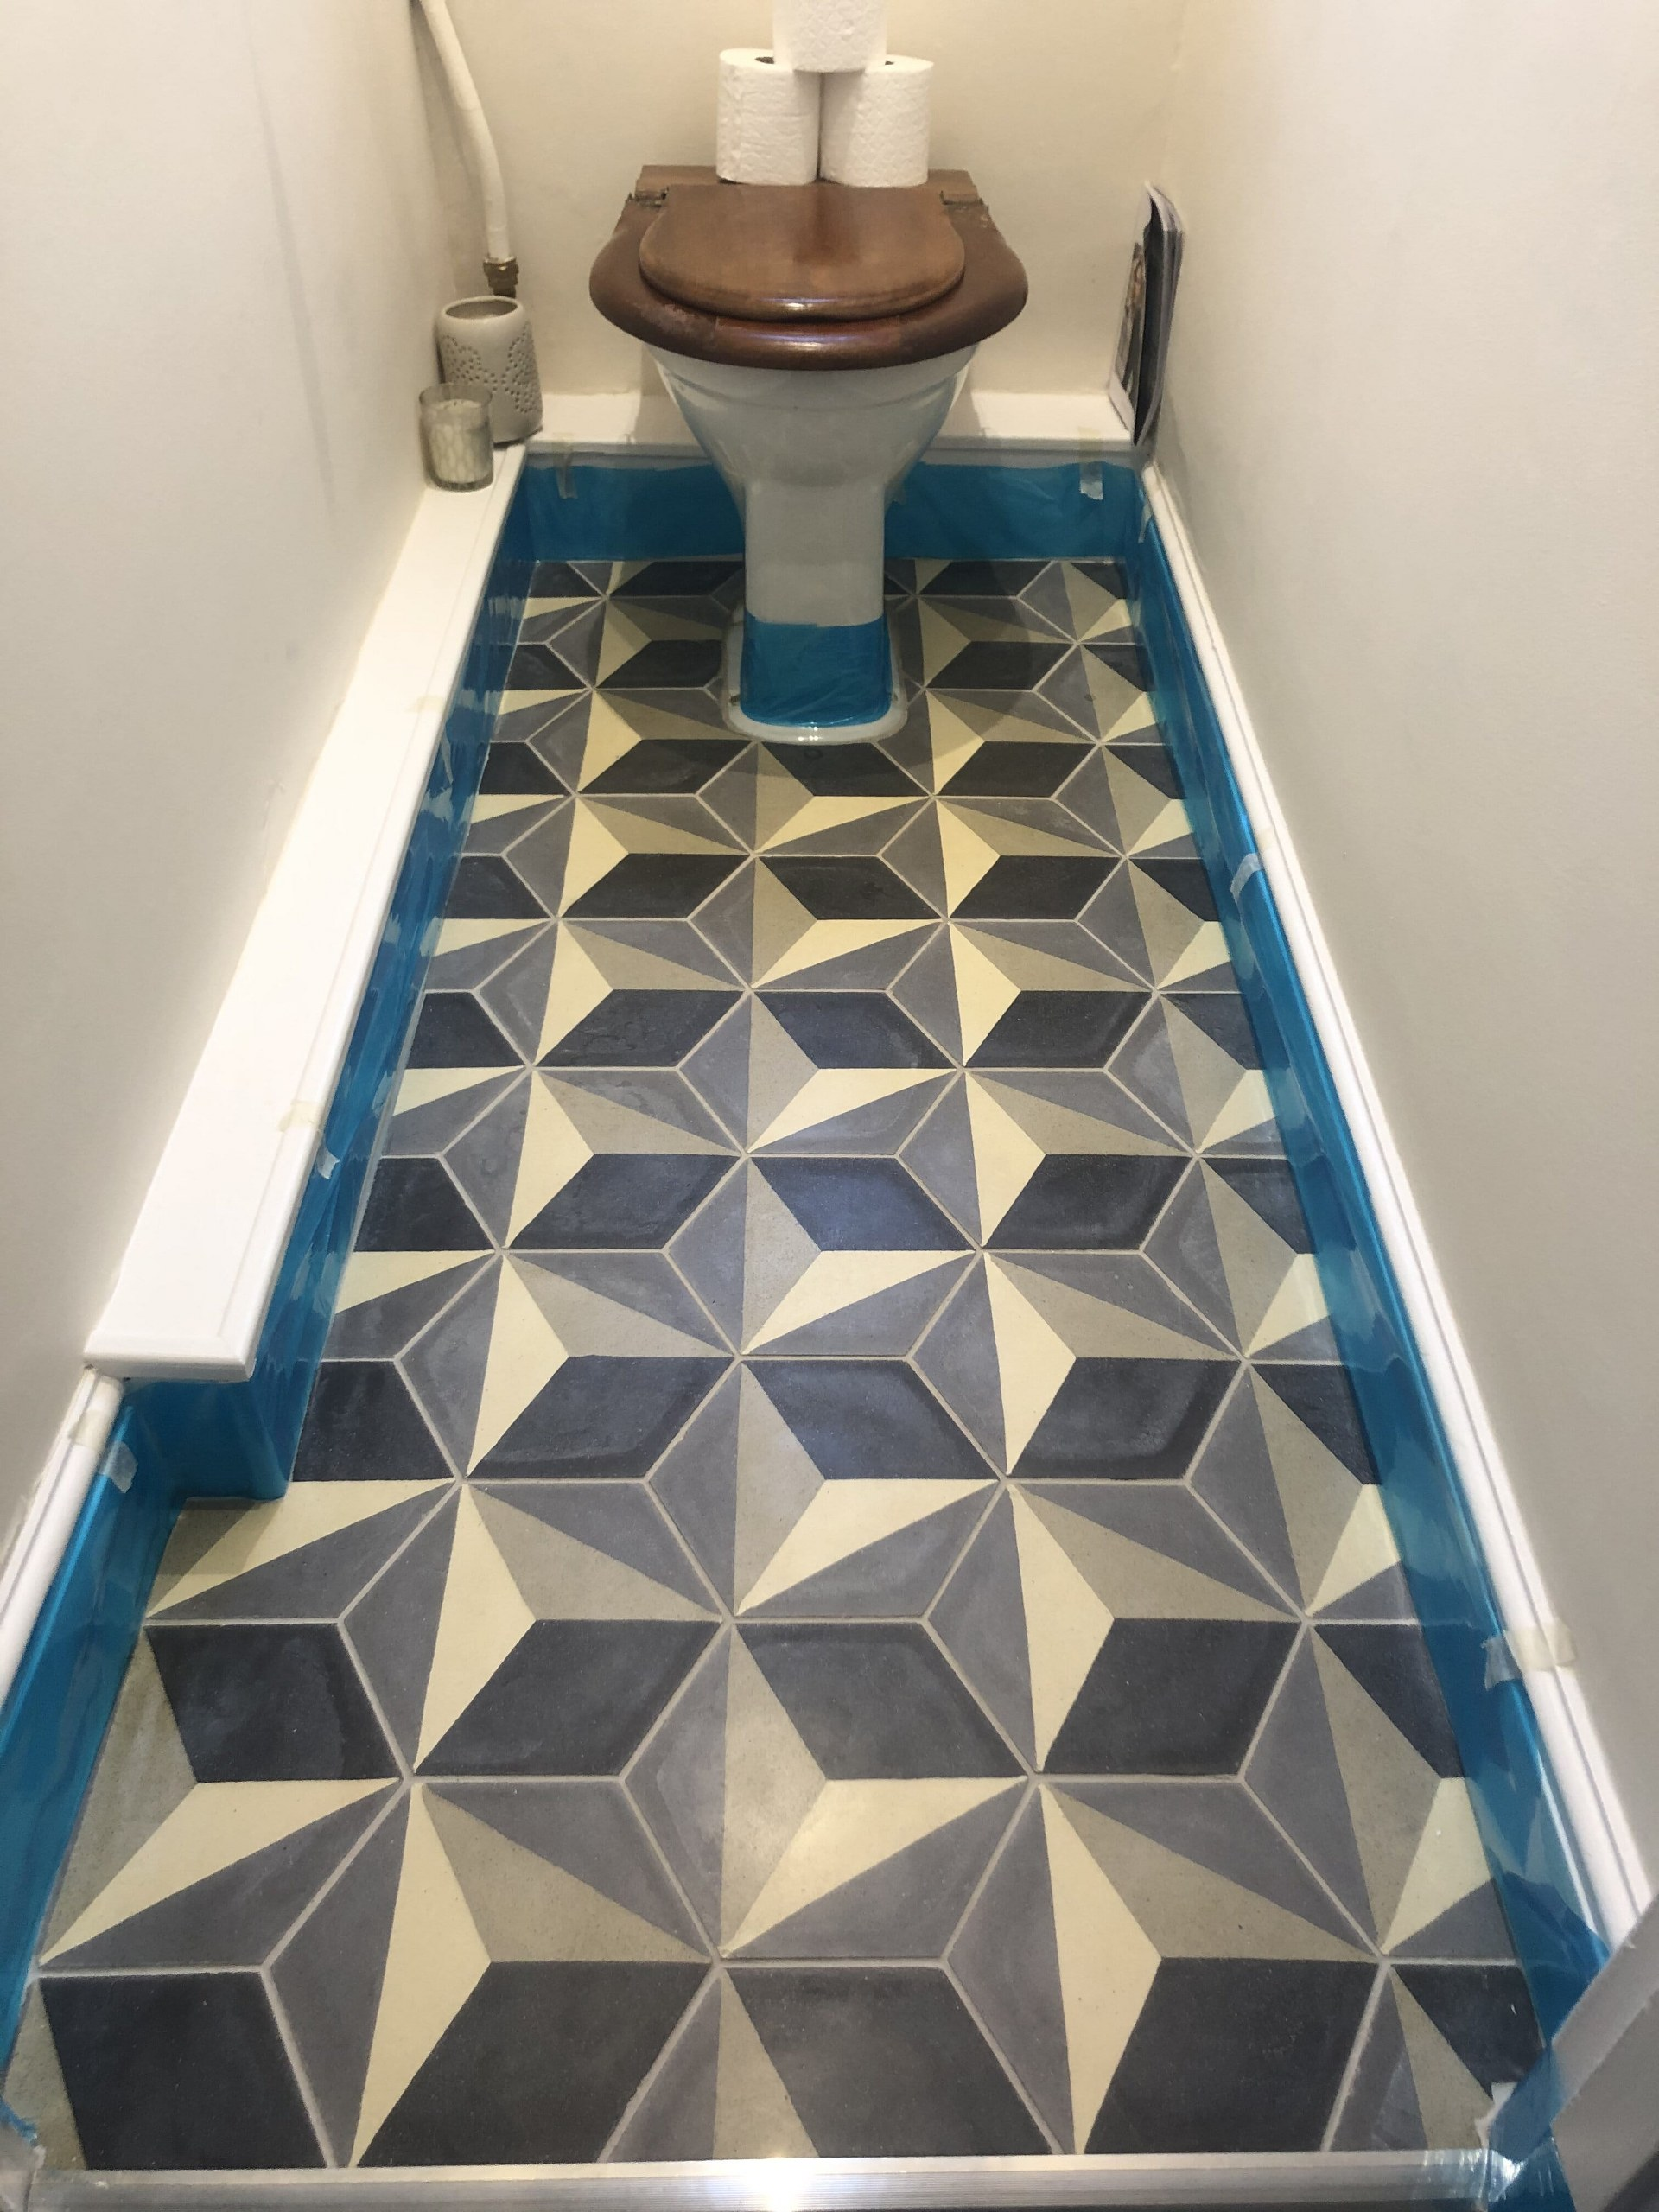 Encaustic Tiled Bathroom Floor Before Renovation in Histon